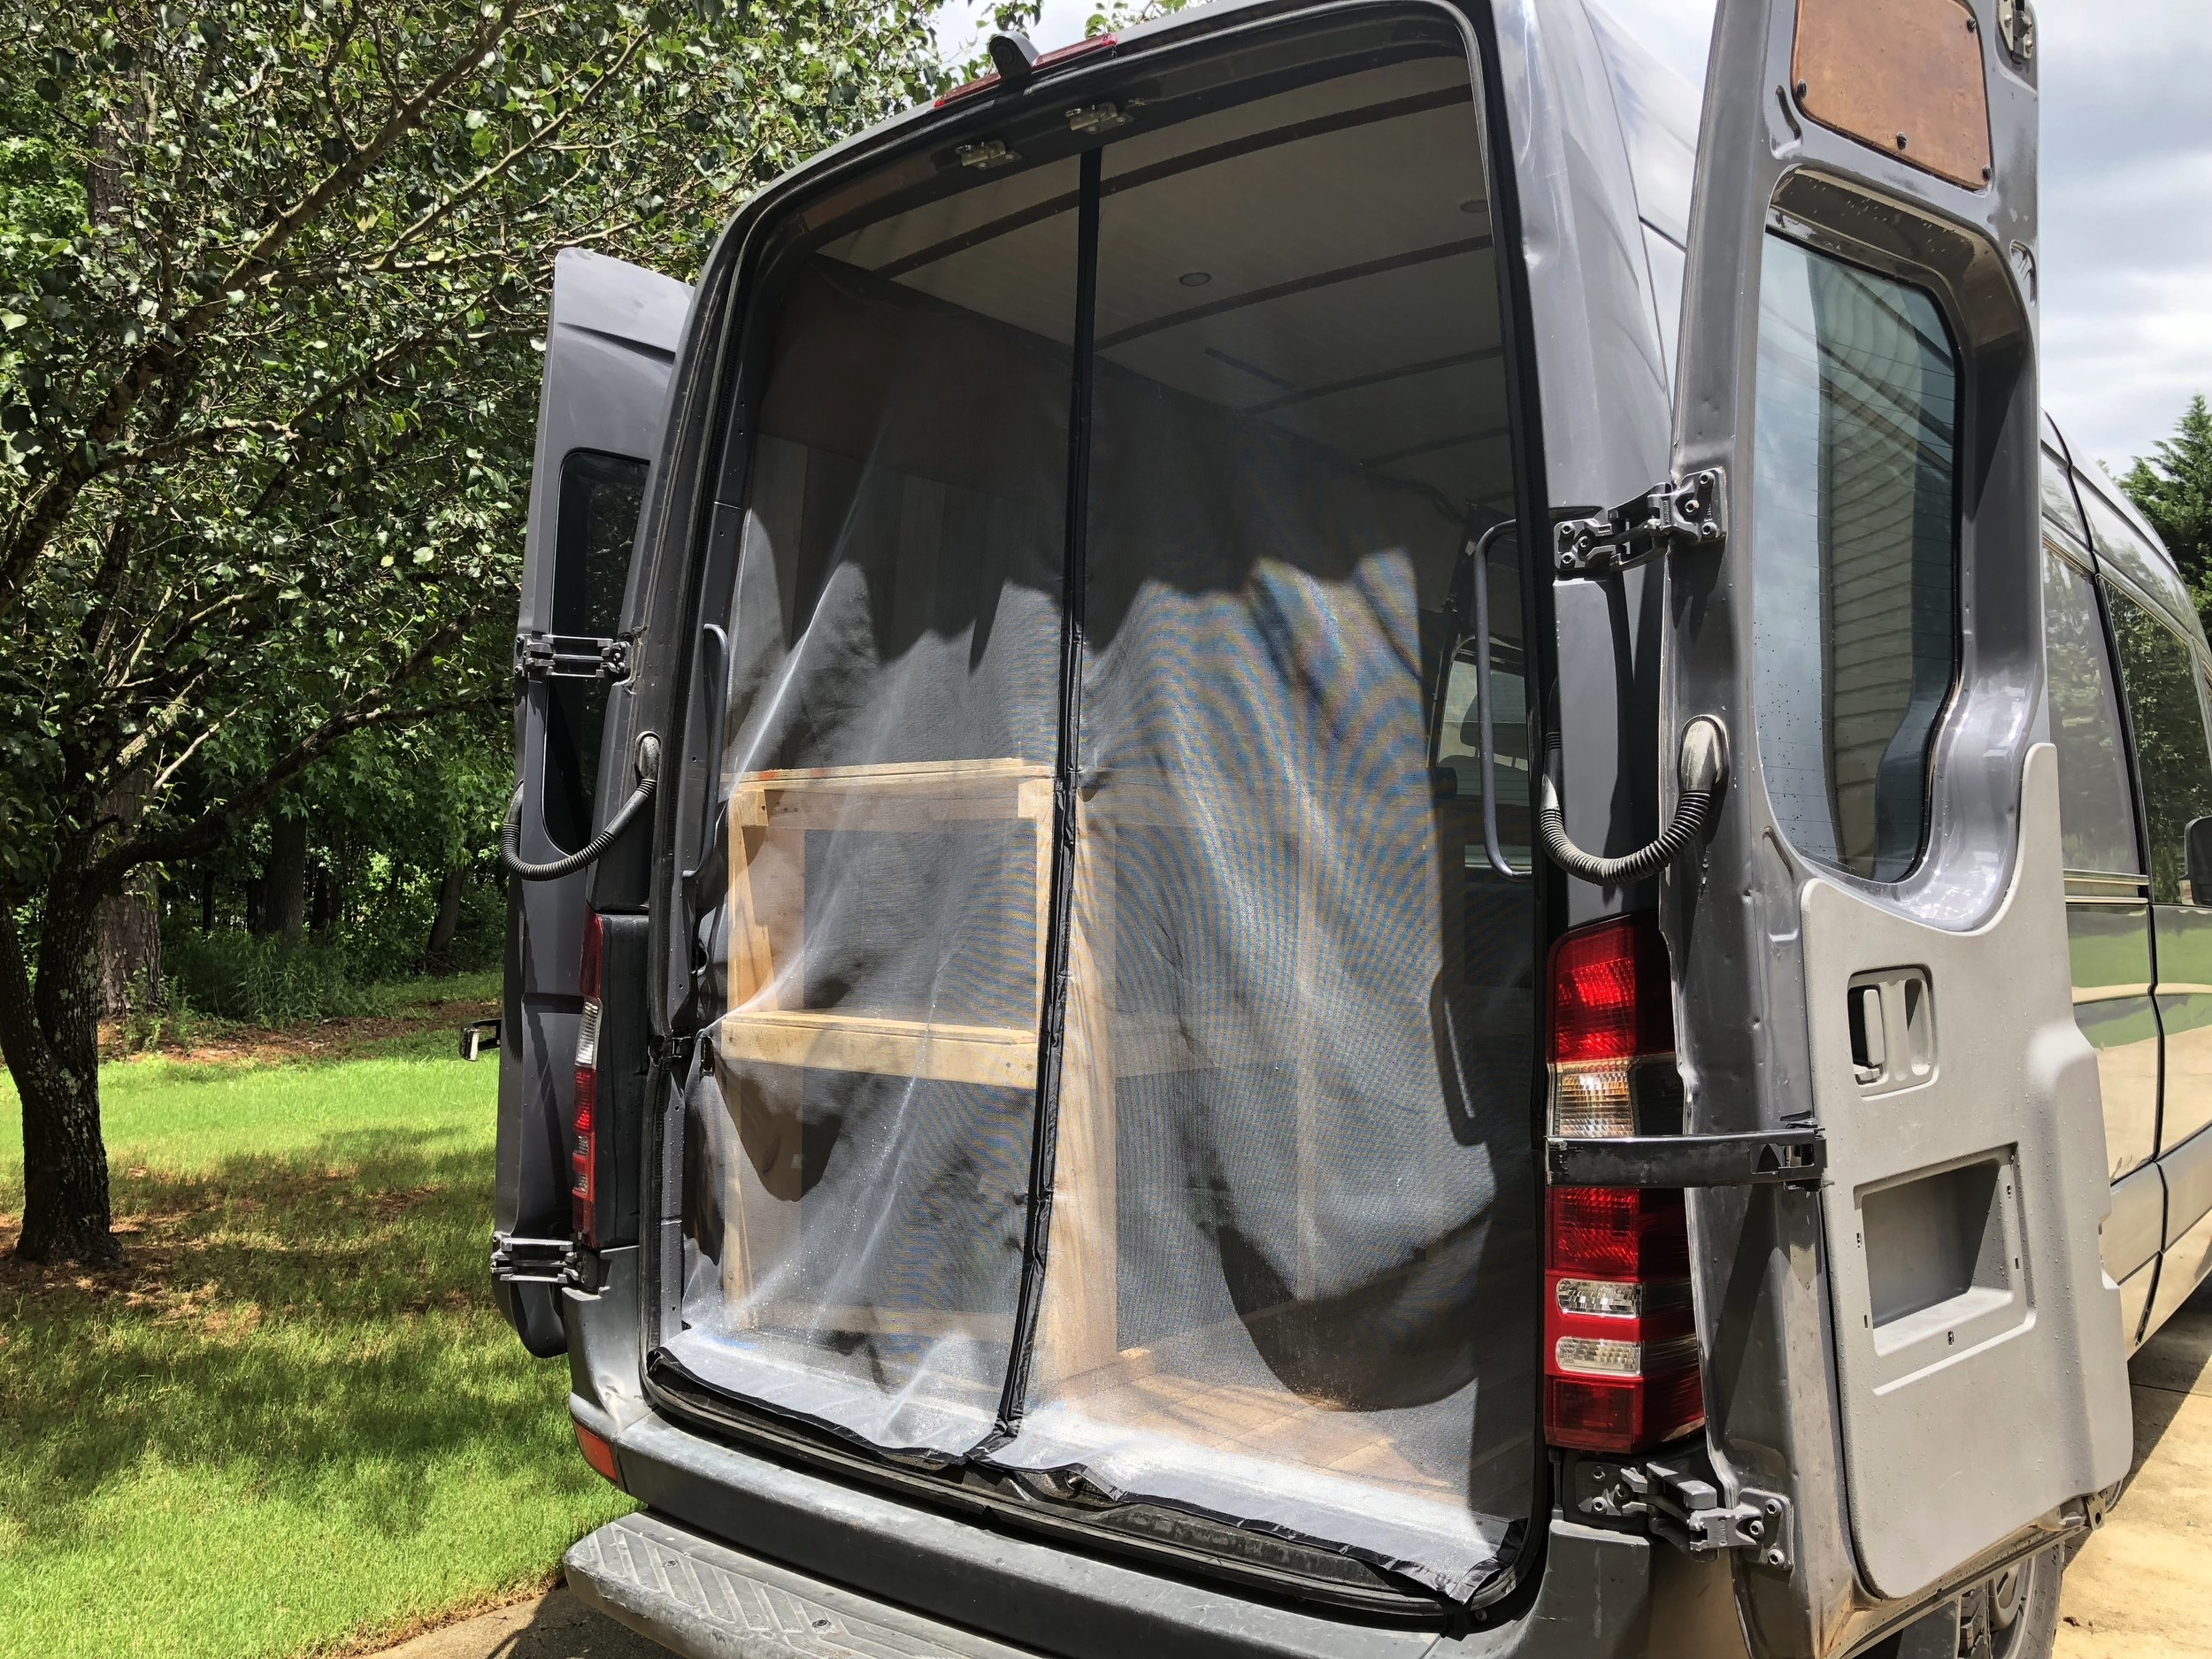 """The magnetic seam in our DIY screen lets us get in and out easily while keeping bugs out! The long """"tail"""" at the bottom sometimes prevented the screens from closing properly, so we ended up trimming it..."""